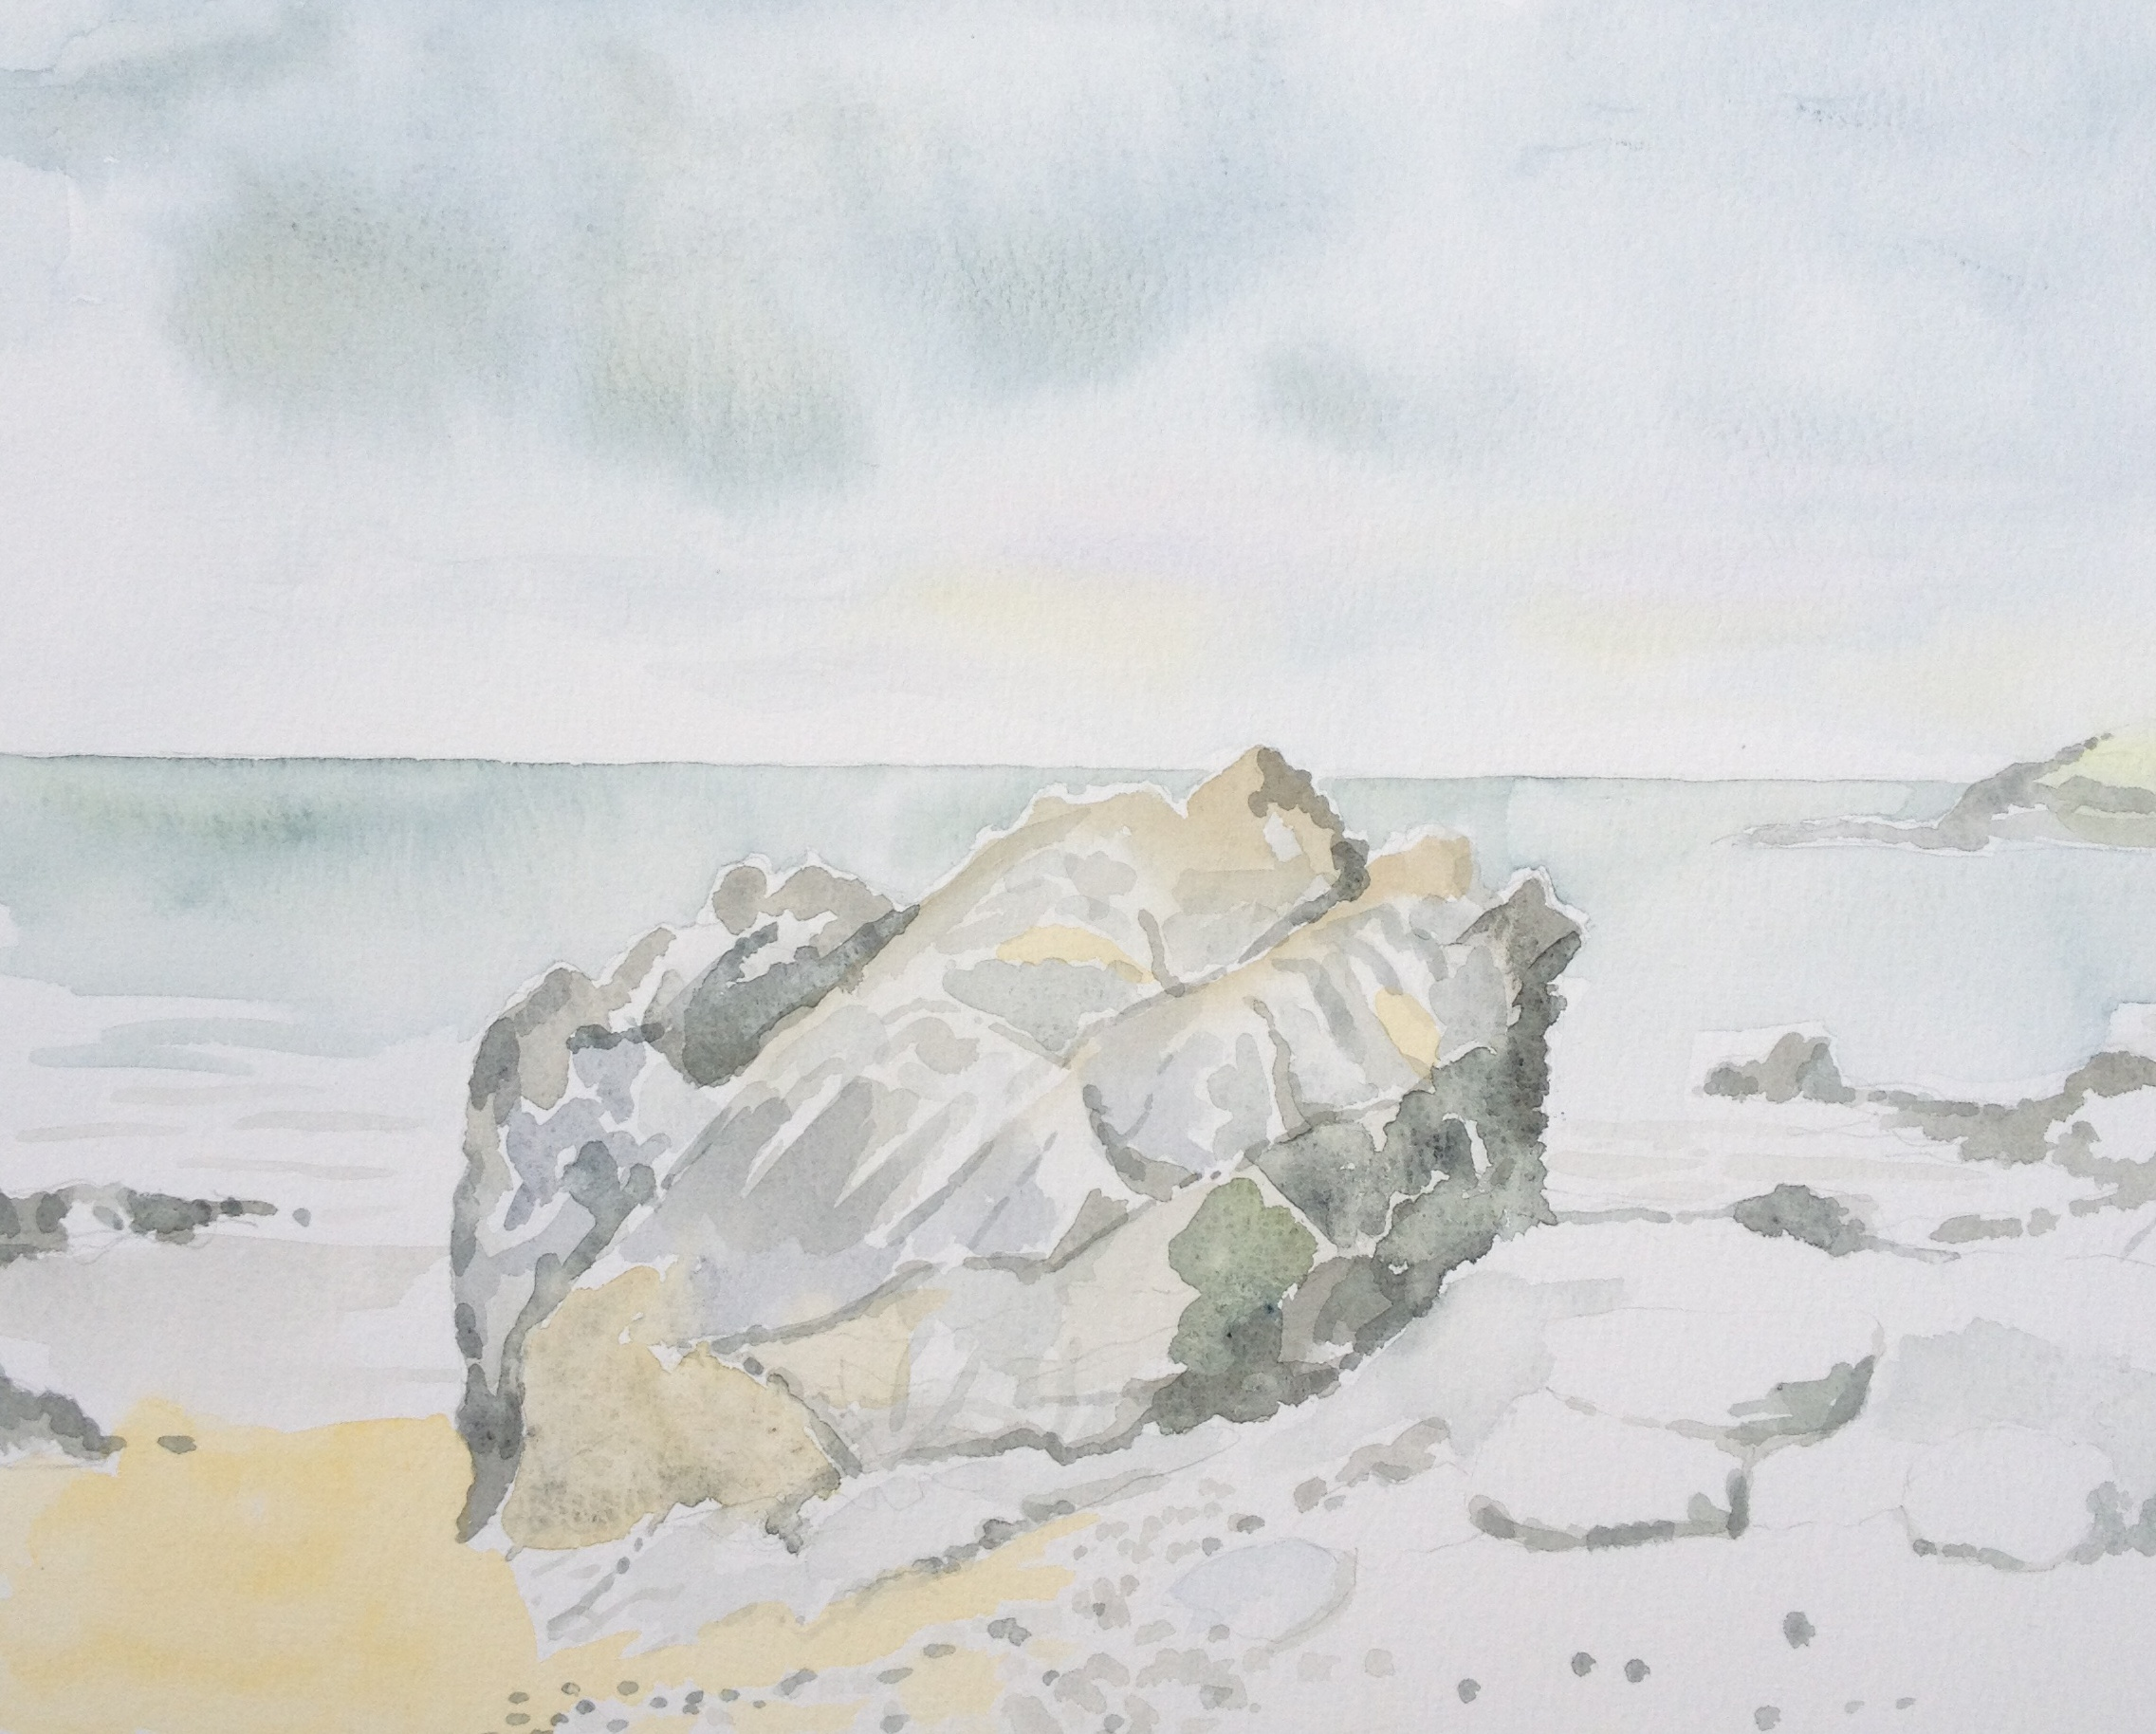 'Storr Rock, Rotherslade, Gower' watercolour on paper (2013)